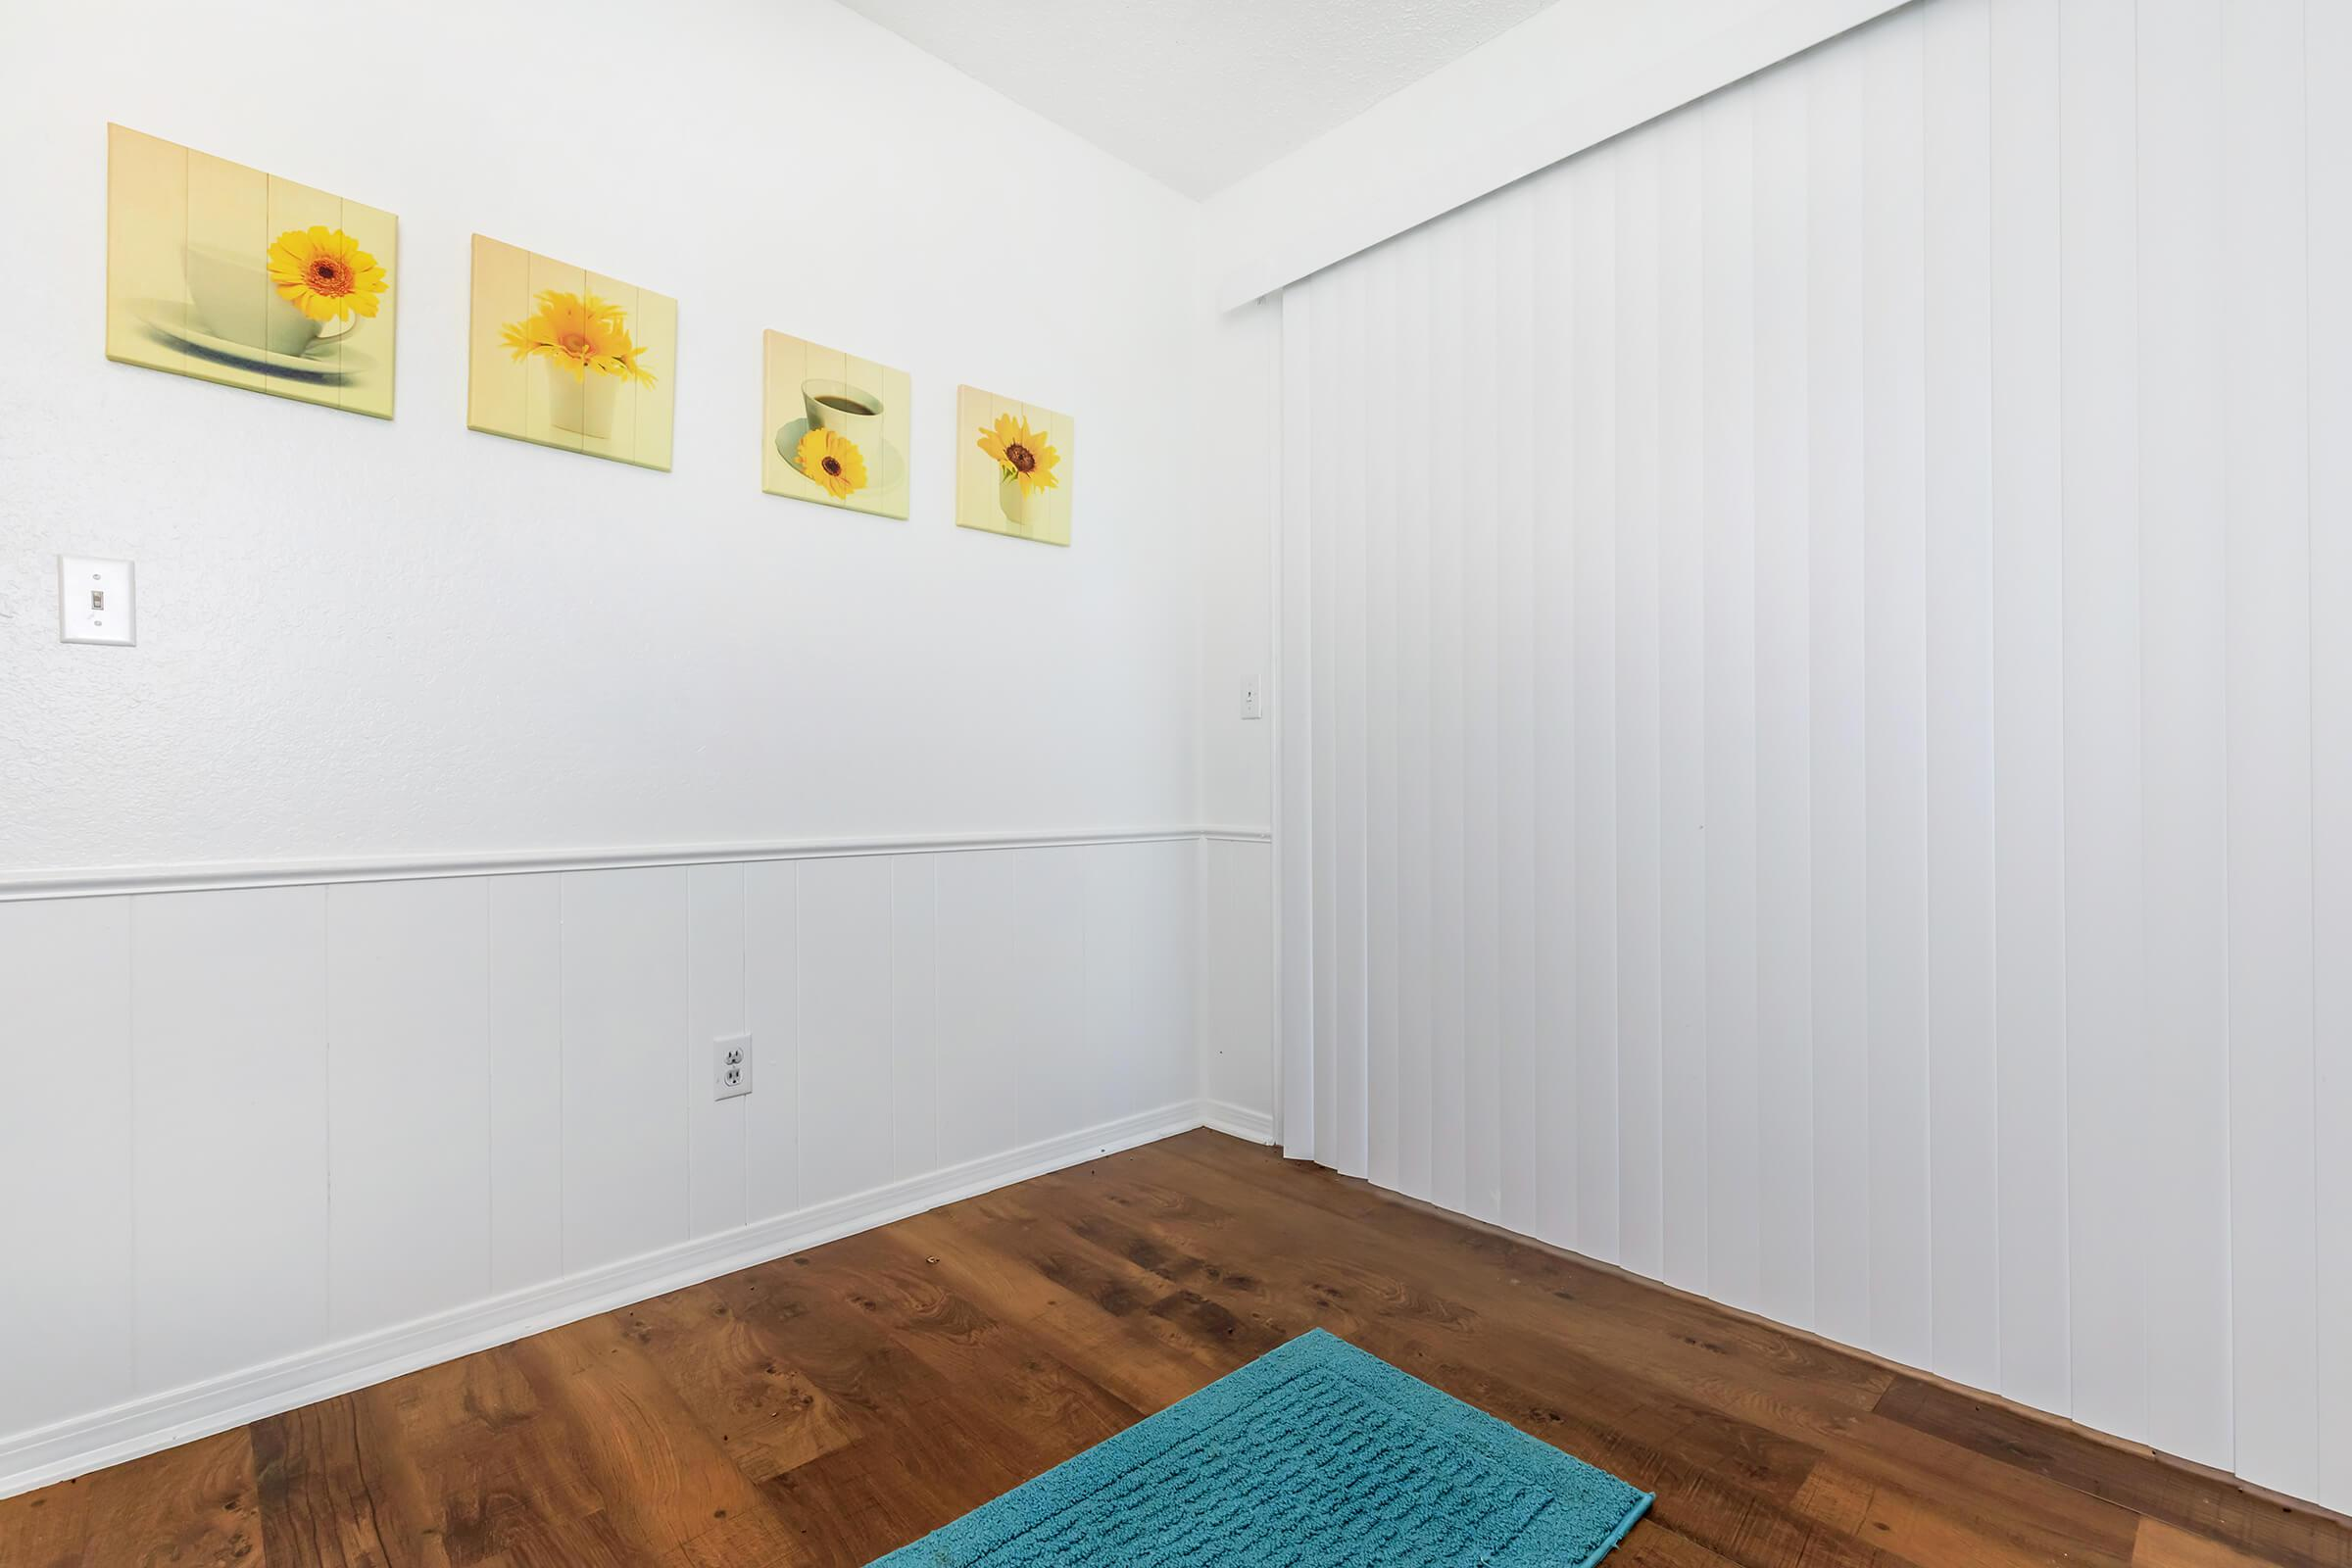 a room with art on the wall